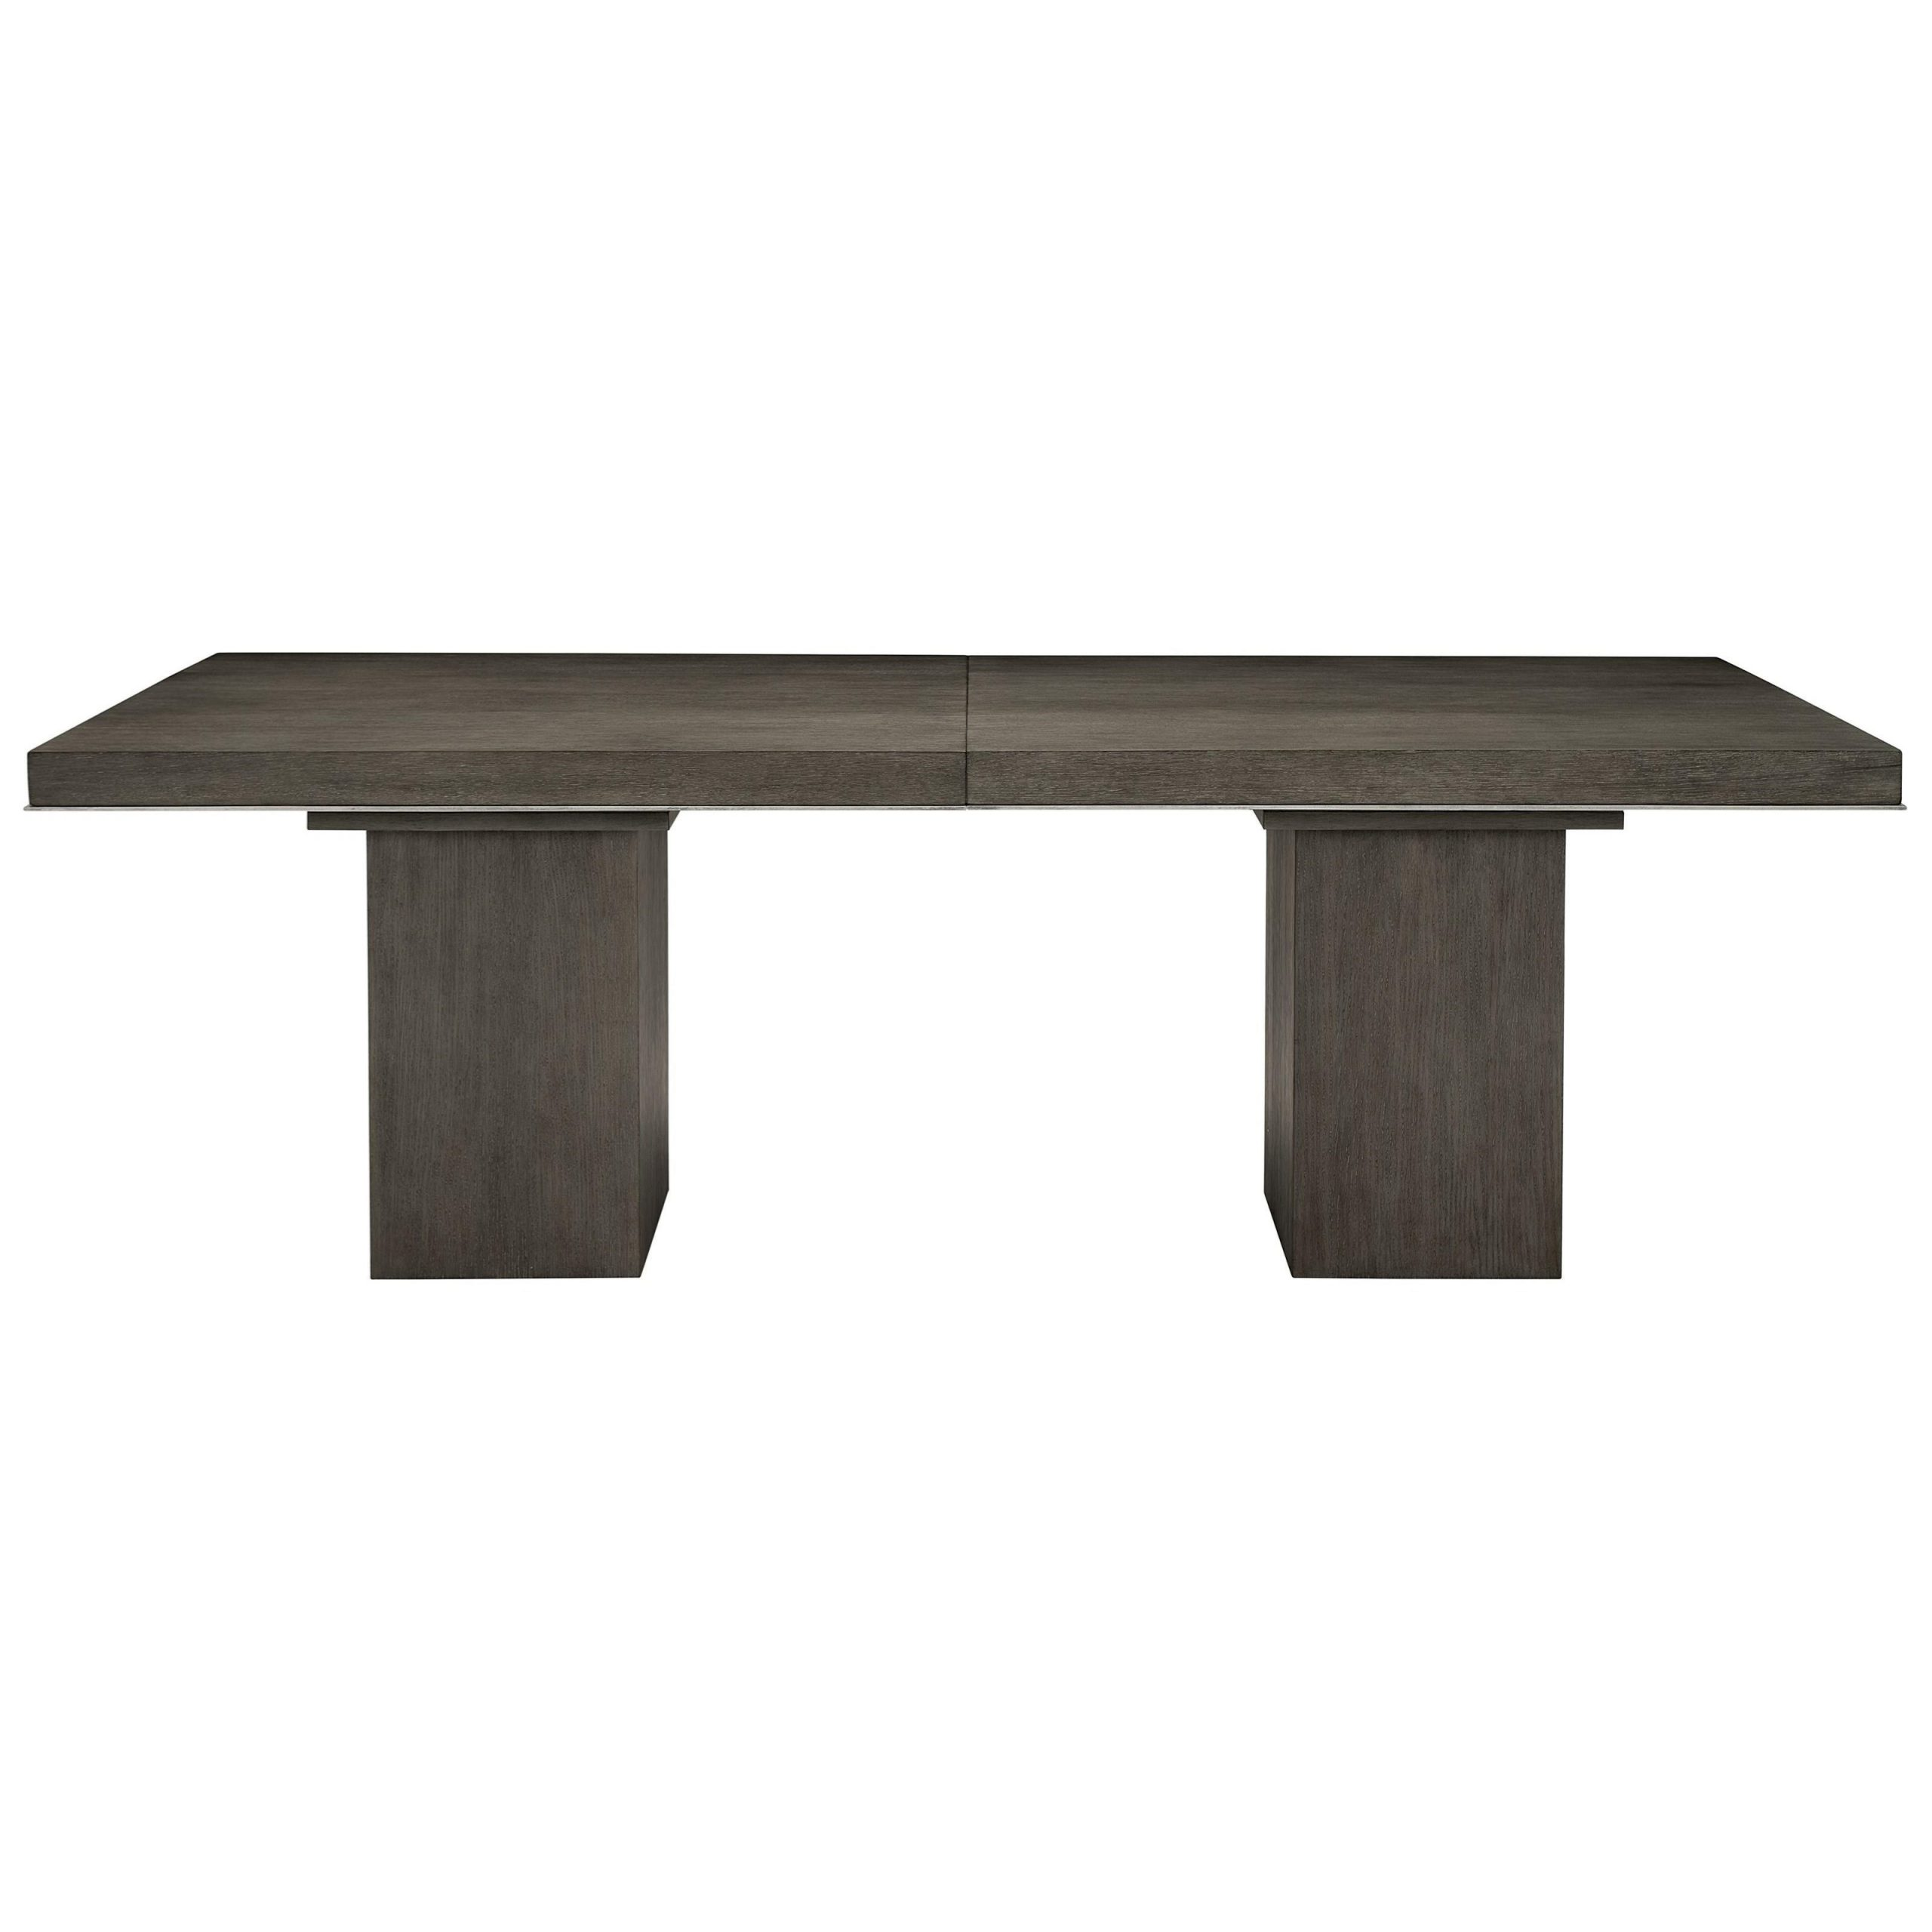 Bernhardt Linea Transitional Rectangular Dining Table With In 2017 Charcoal Transitional 6 Seating Rectangular Dining Tables (View 3 of 30)